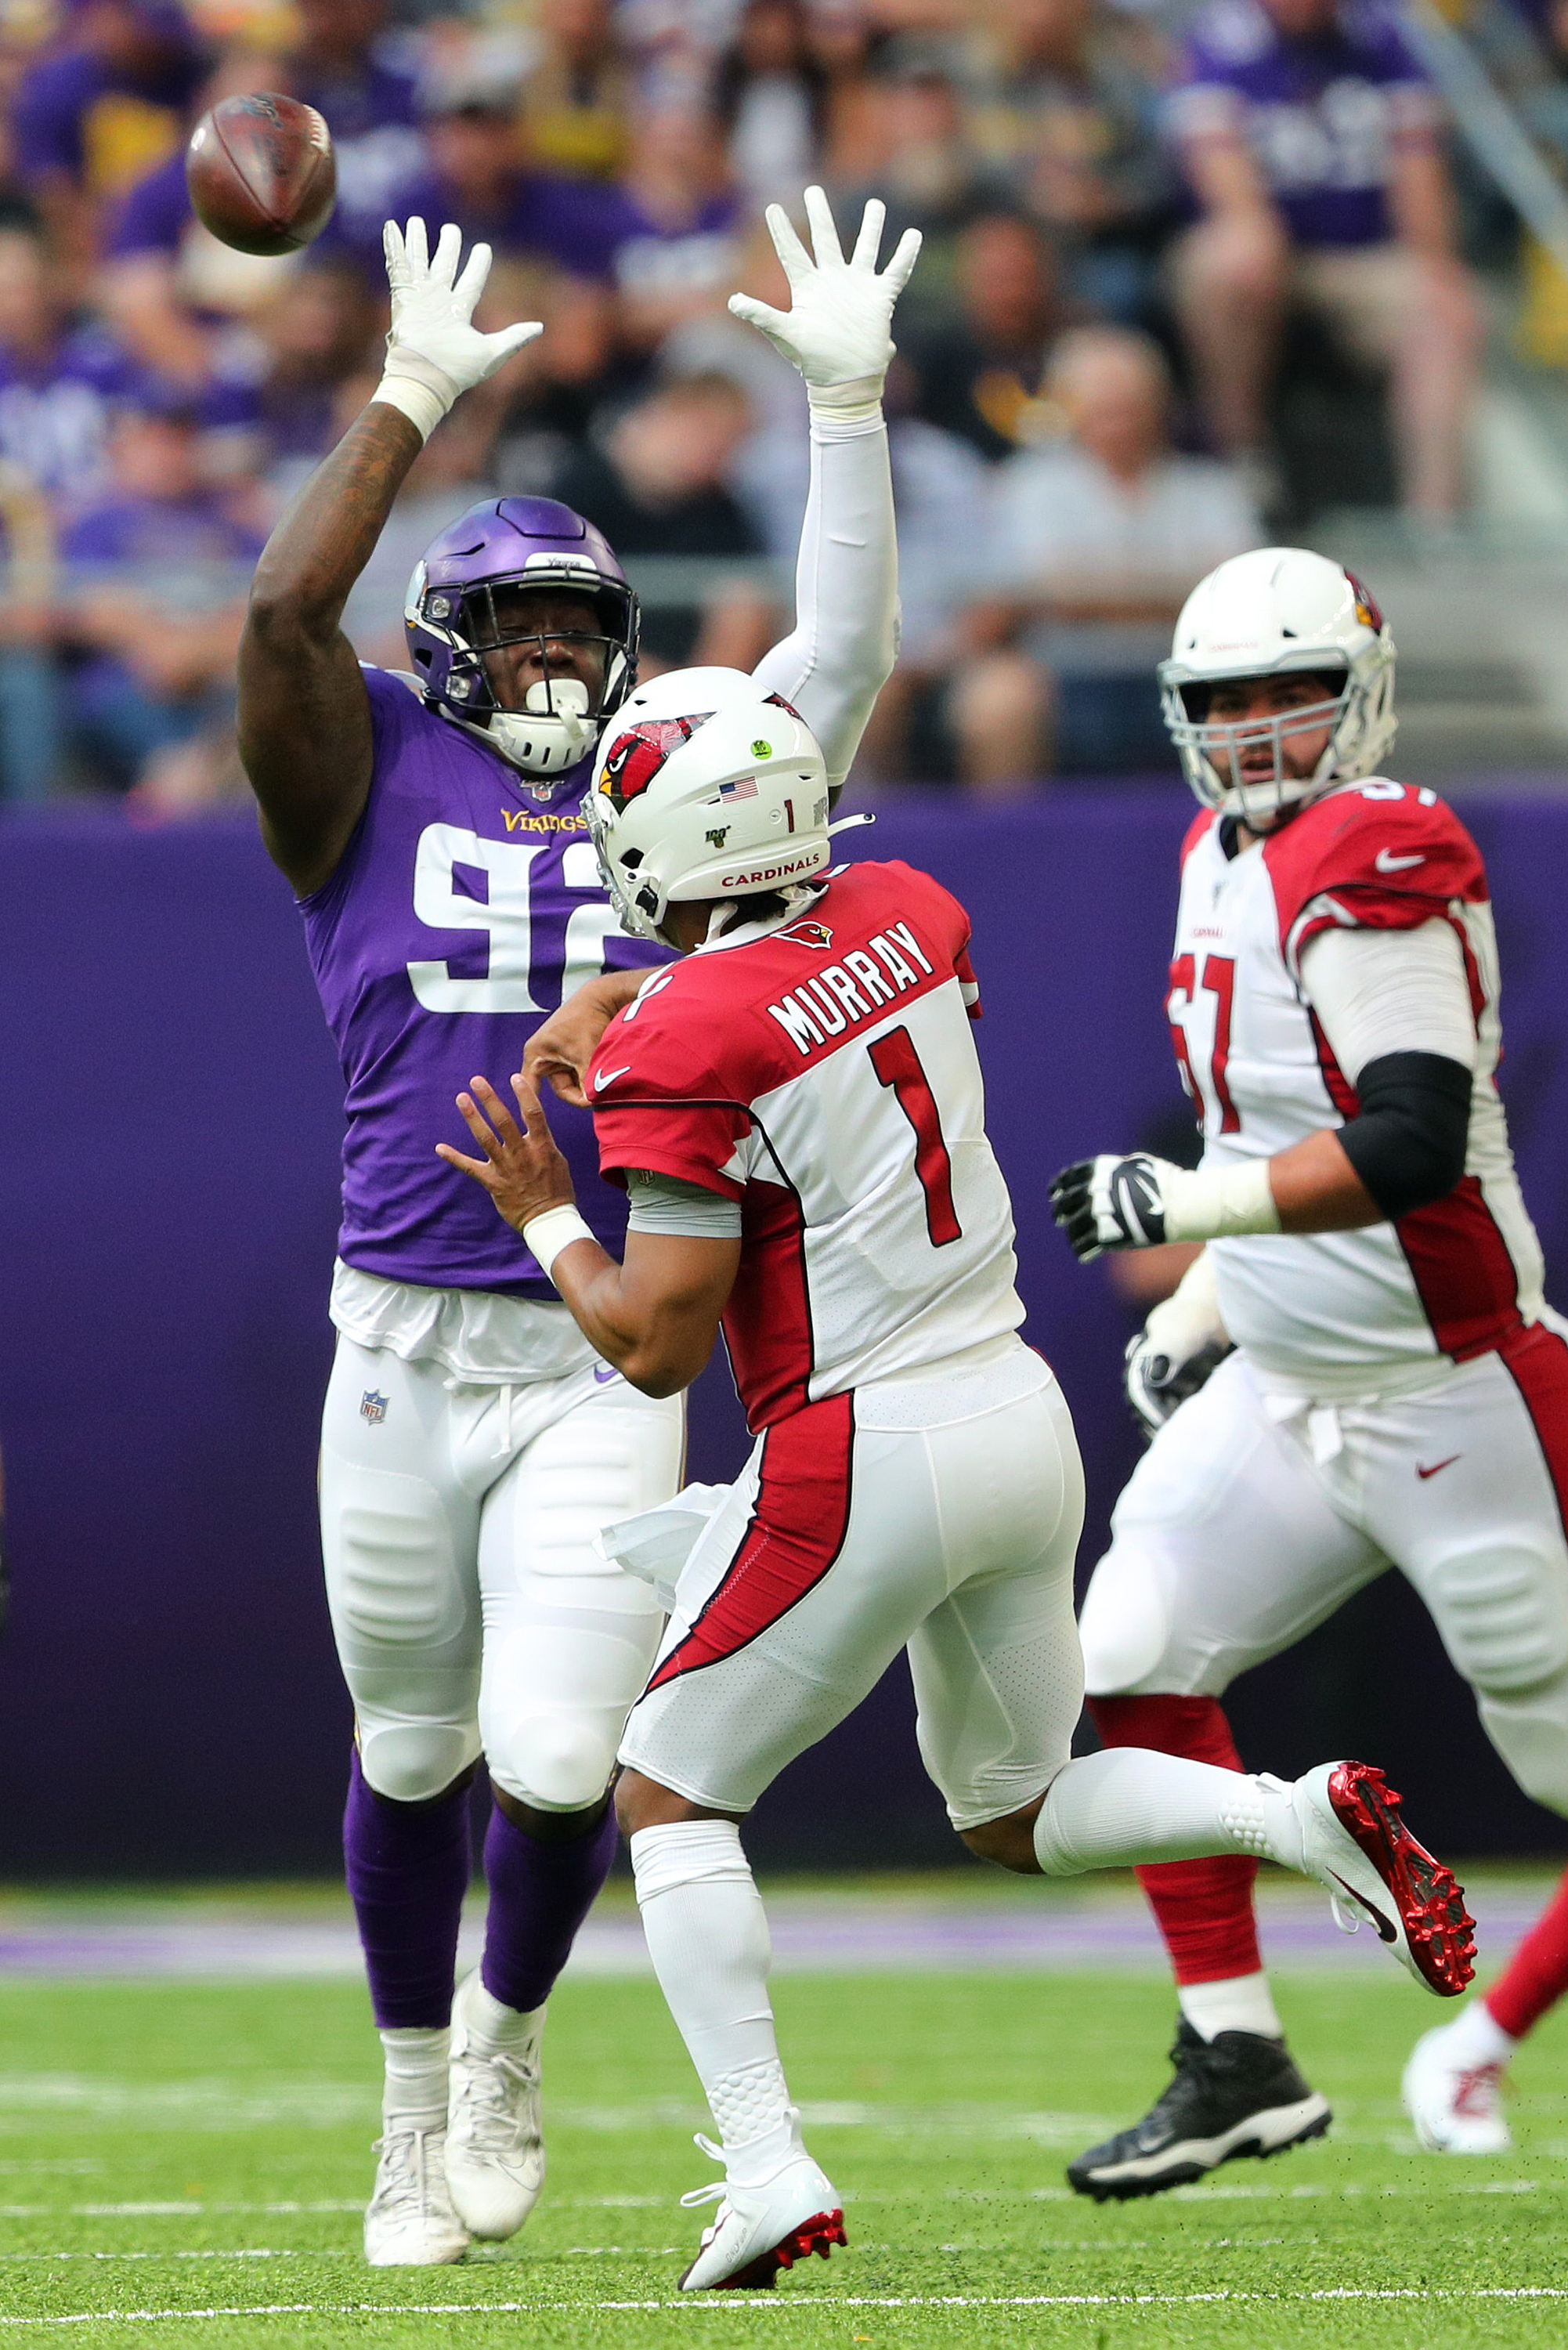 MINNEAPOLIS, MN - AUGUST 24: Jalyn Holmes #92 of the Minnesota Vikings attempts to block the pass of Kyler Murray #1 of the Arizona Cardinals in the second quarter of pre-season play at U.S. Bank Stadium on August 24, 2019 in Minneapolis, Minnesota. (Photo by Adam Bettcher/Getty Images)